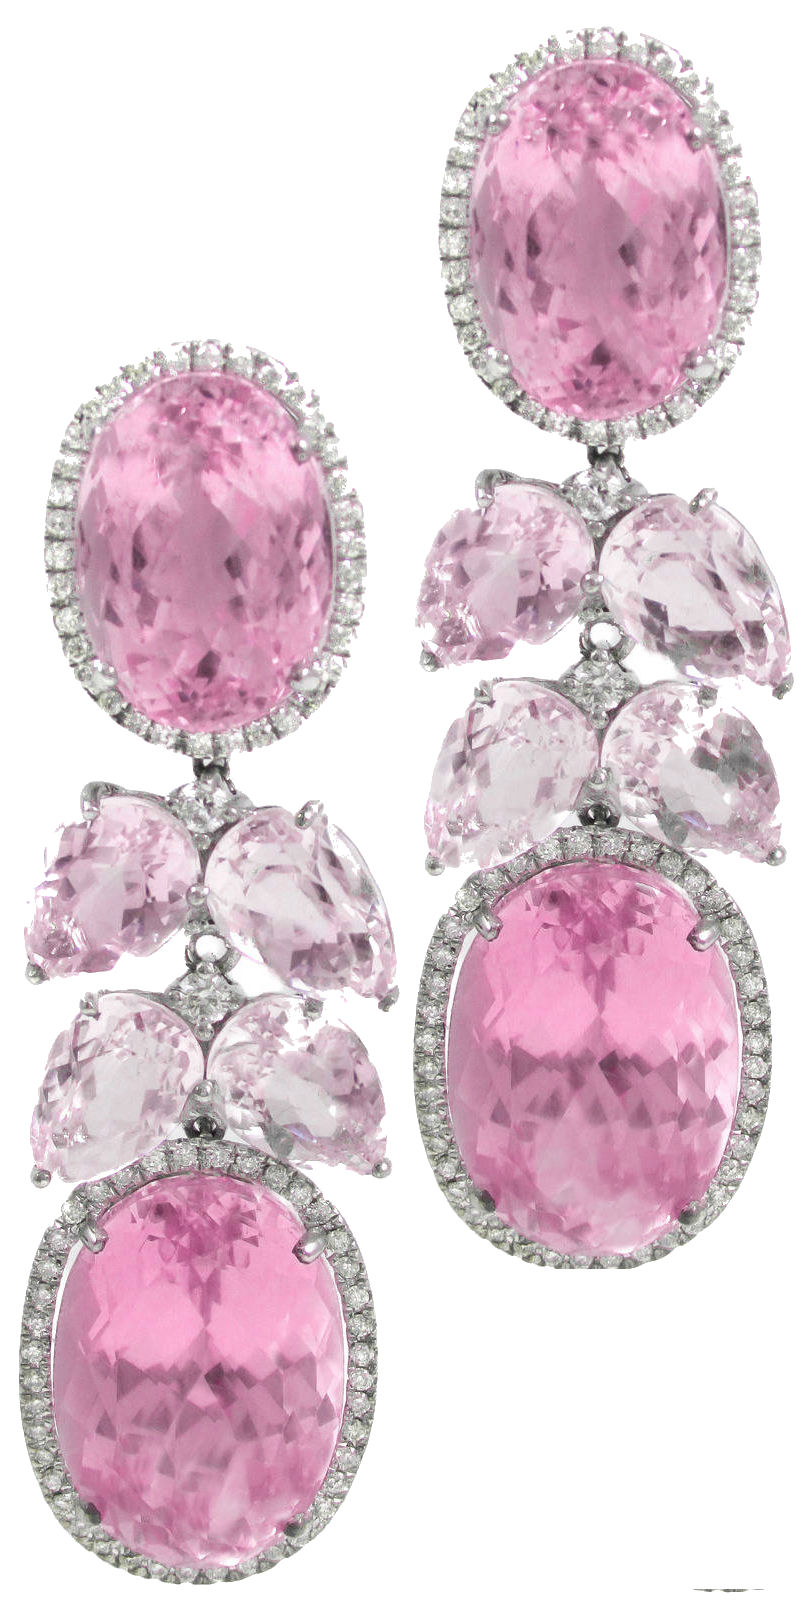 Pink Kunzite Diamond Waterfall Earrings Daily Jewel Haute Tramp